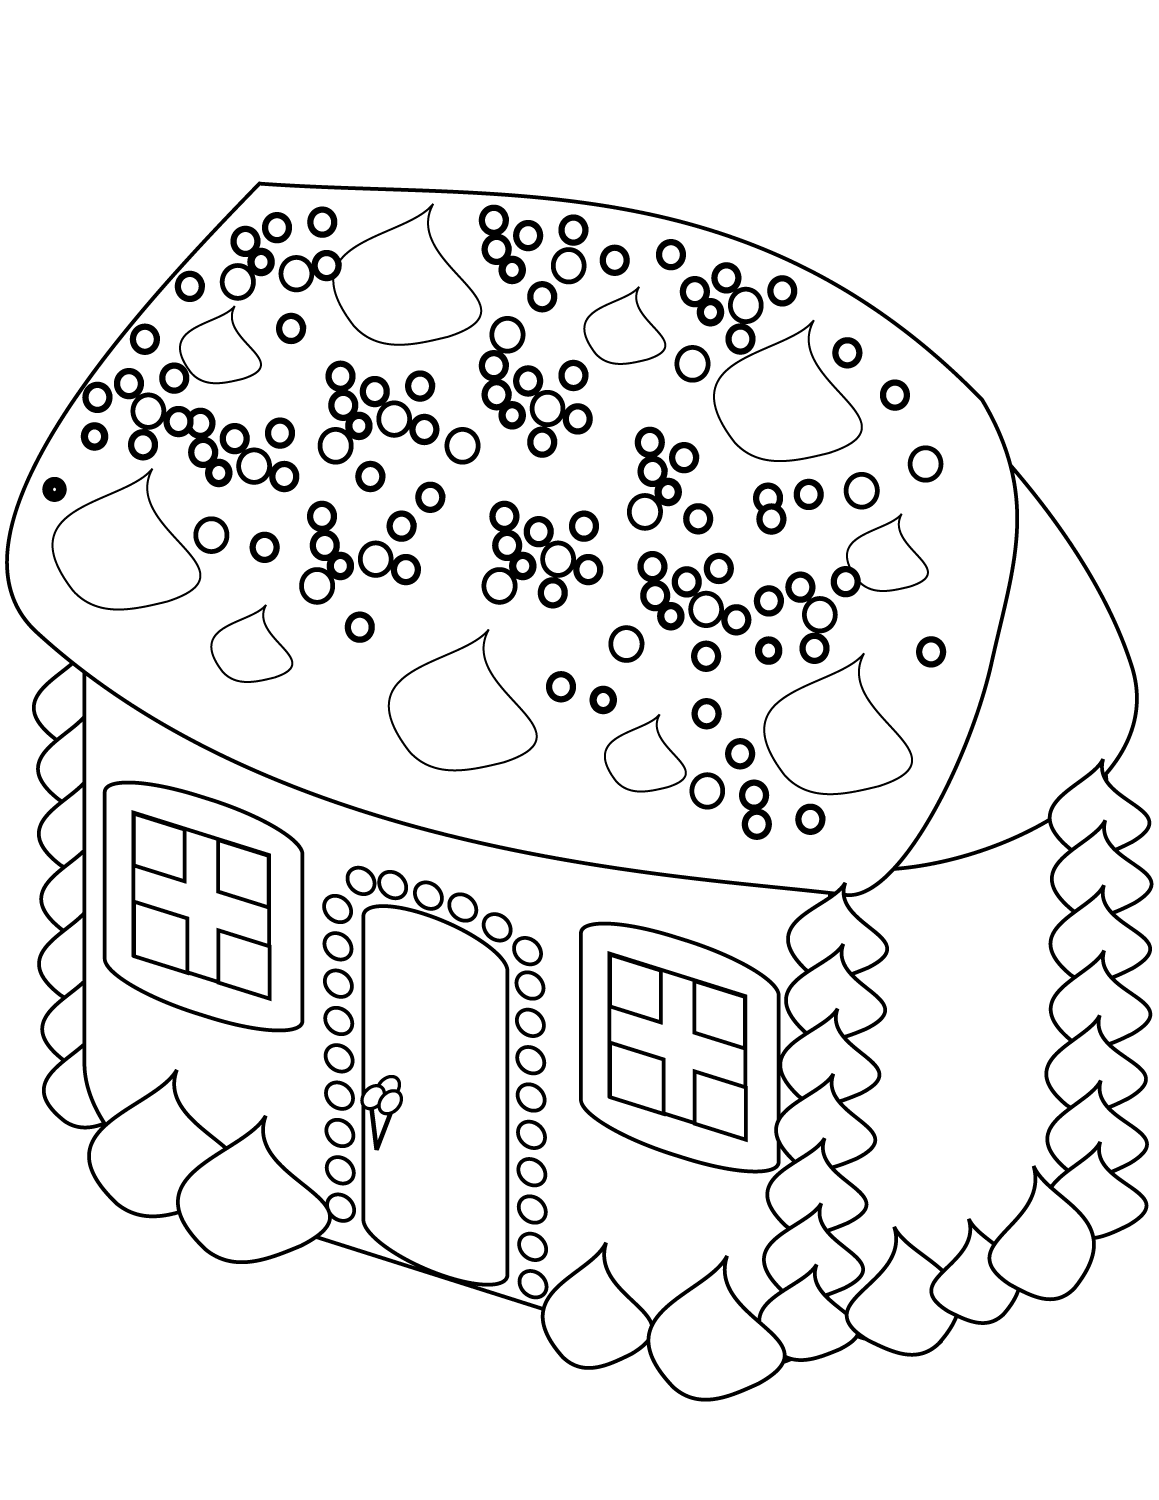 coloring gingerbread house gingerbread house coloring sheet coloring home gingerbread coloring house